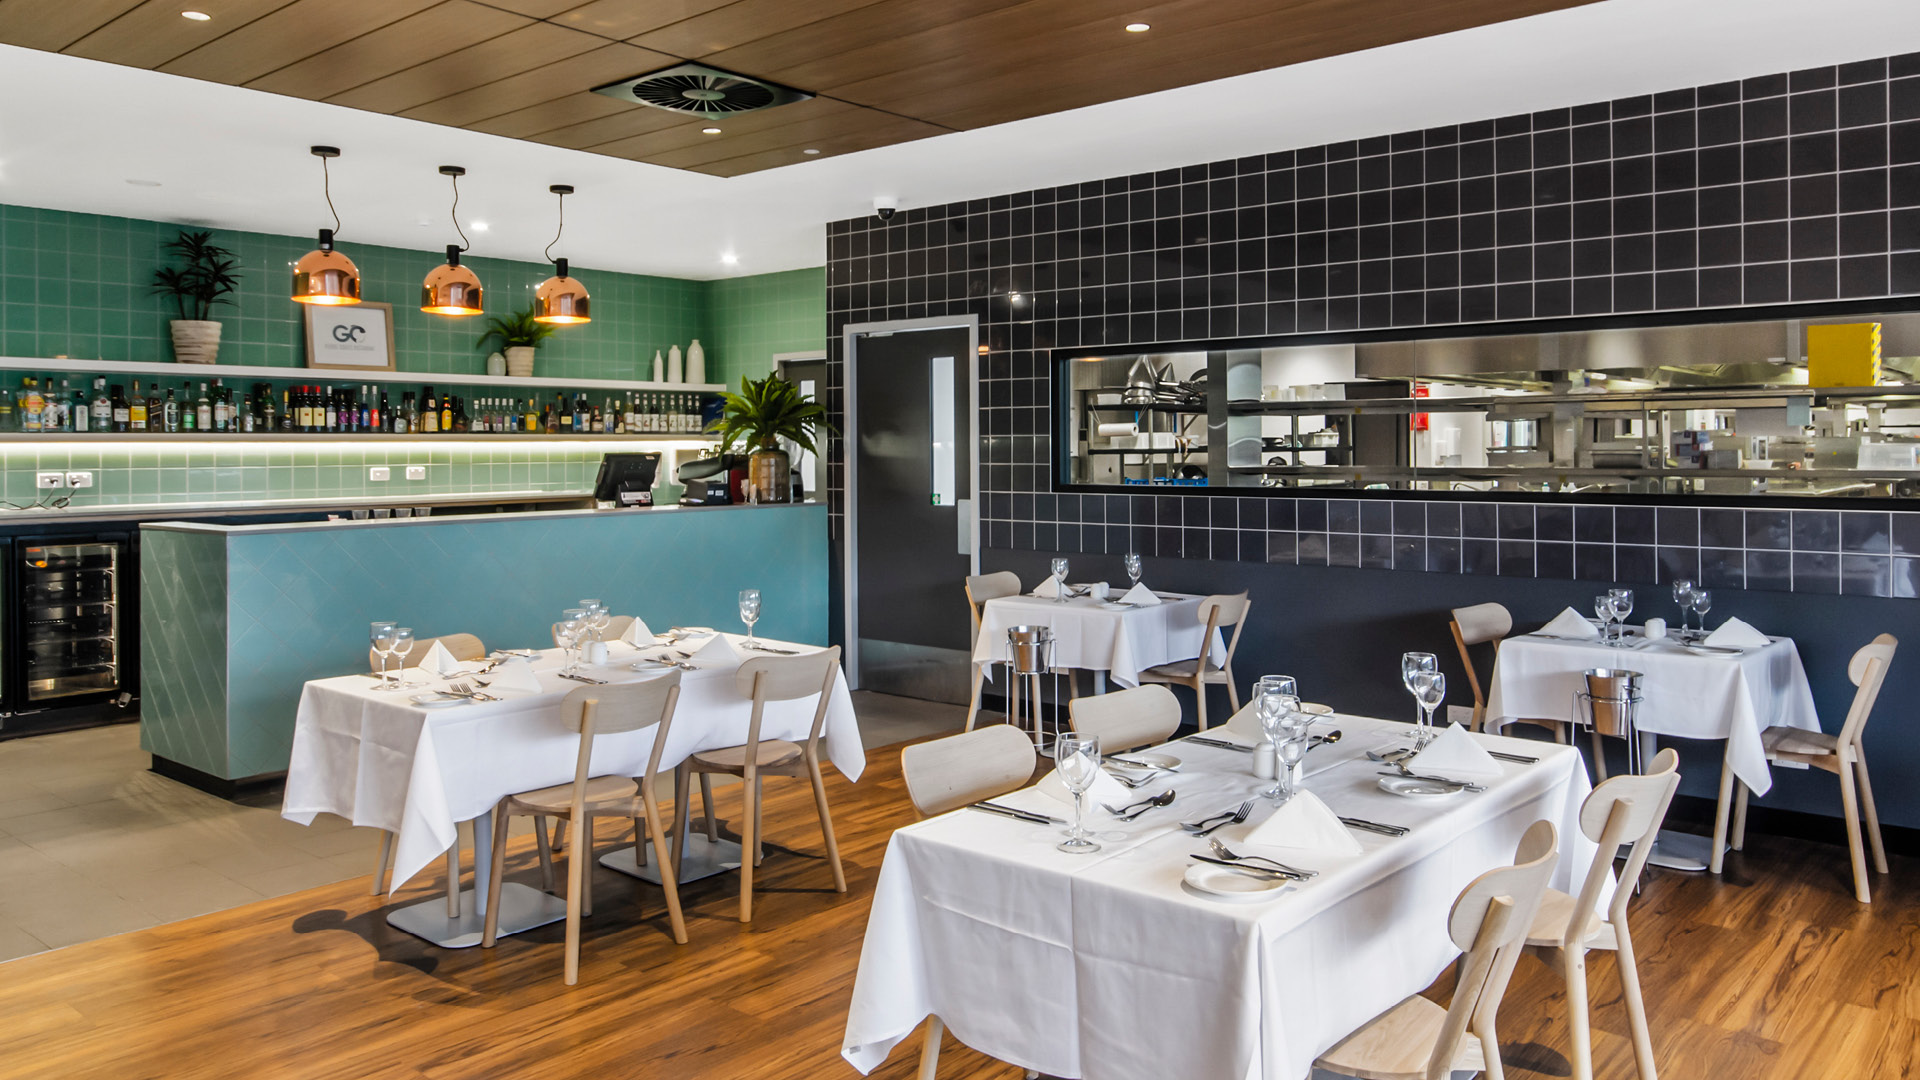 townsville-george-coates-restaurant-hero-feature.jpg